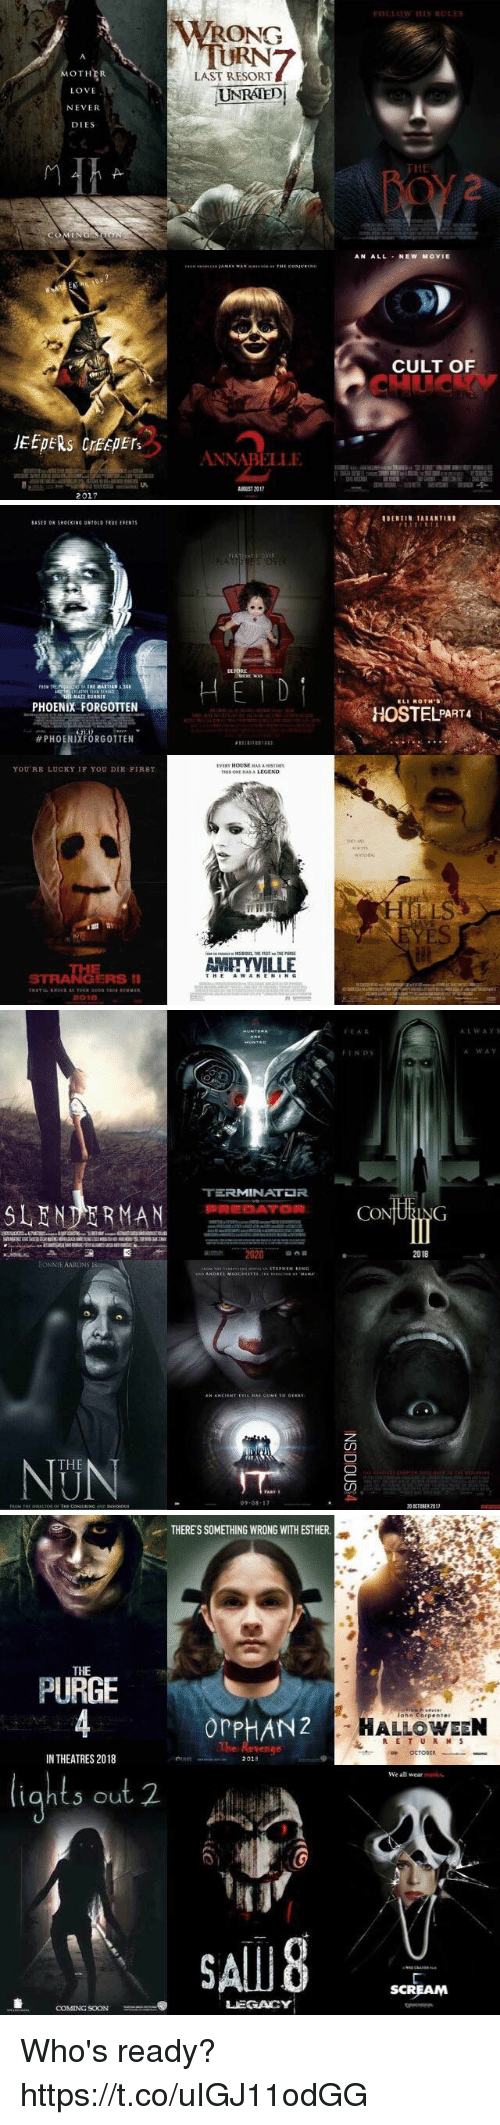 jeepers creepers: MOTHER  LOVE  NEVER  DIES  JEEPERS creepers  2017  WRONG  LAST RESORT  UNRATED  ANNABELLE  FOLLOW HIS RULES  AN ALL NEW MOVIE  CULT OF   PHOENIX FORGOTTEN  PHOENIXFORGOTTEN  YOU RE LUCKY IF YOU DIE FIRST.  STRANGERS II  2001E  BEFORE  EVER HOUSE HASAHISTORY  AMITYVILLE  ROTH's  HOSTEL PART4   TERMINATDR  SLENDER MAN PREDATOR  2020  BONNIE AARONS  THE  09 08  It AR  CO  ING  20 CIOBER 2017  A:L w A v 5  A WAV   THERESSOMETHING WRONG WITH ESTHER.  THE  PURGE  or PHANZ  IN THEATRES 2018  2018  S out 2.  LEGACY  COMING SOON  John Corp enter  HALLOWEEN  R E T U R N S  OCTODER  We all wear  SCREAM Who's ready? https://t.co/uIGJ11odGG